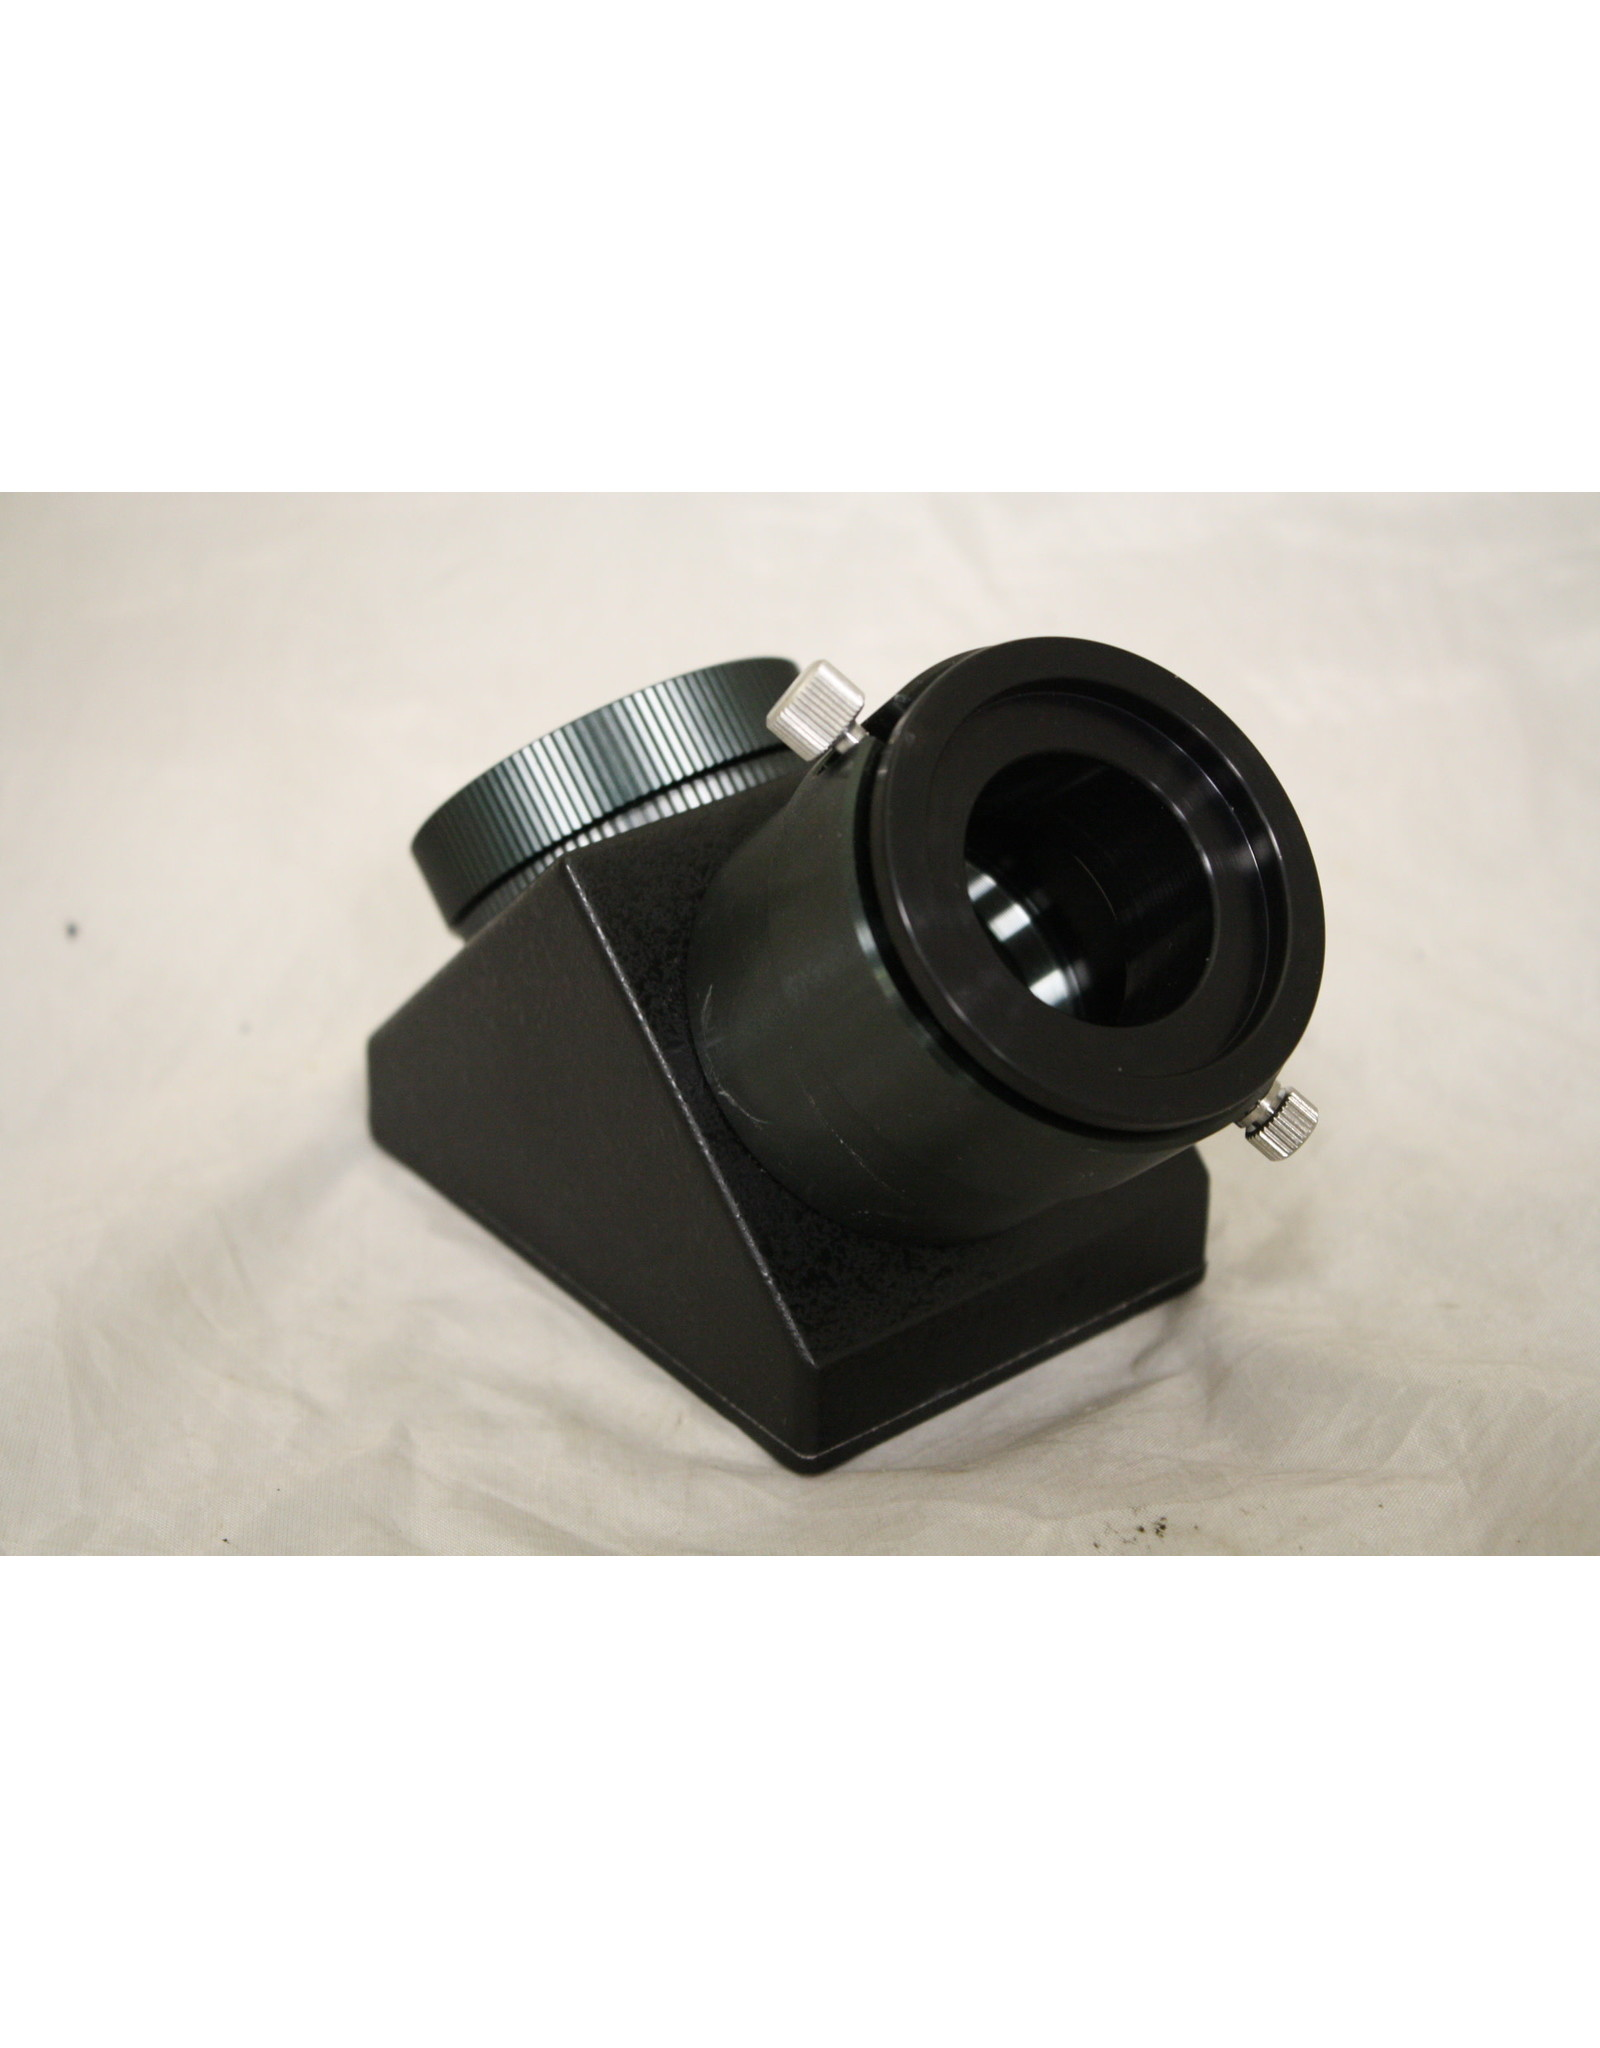 Celestron Celestron 2 inch SCT Mirror Diagonal #93519 with 1.25 Reducer (Store Display)